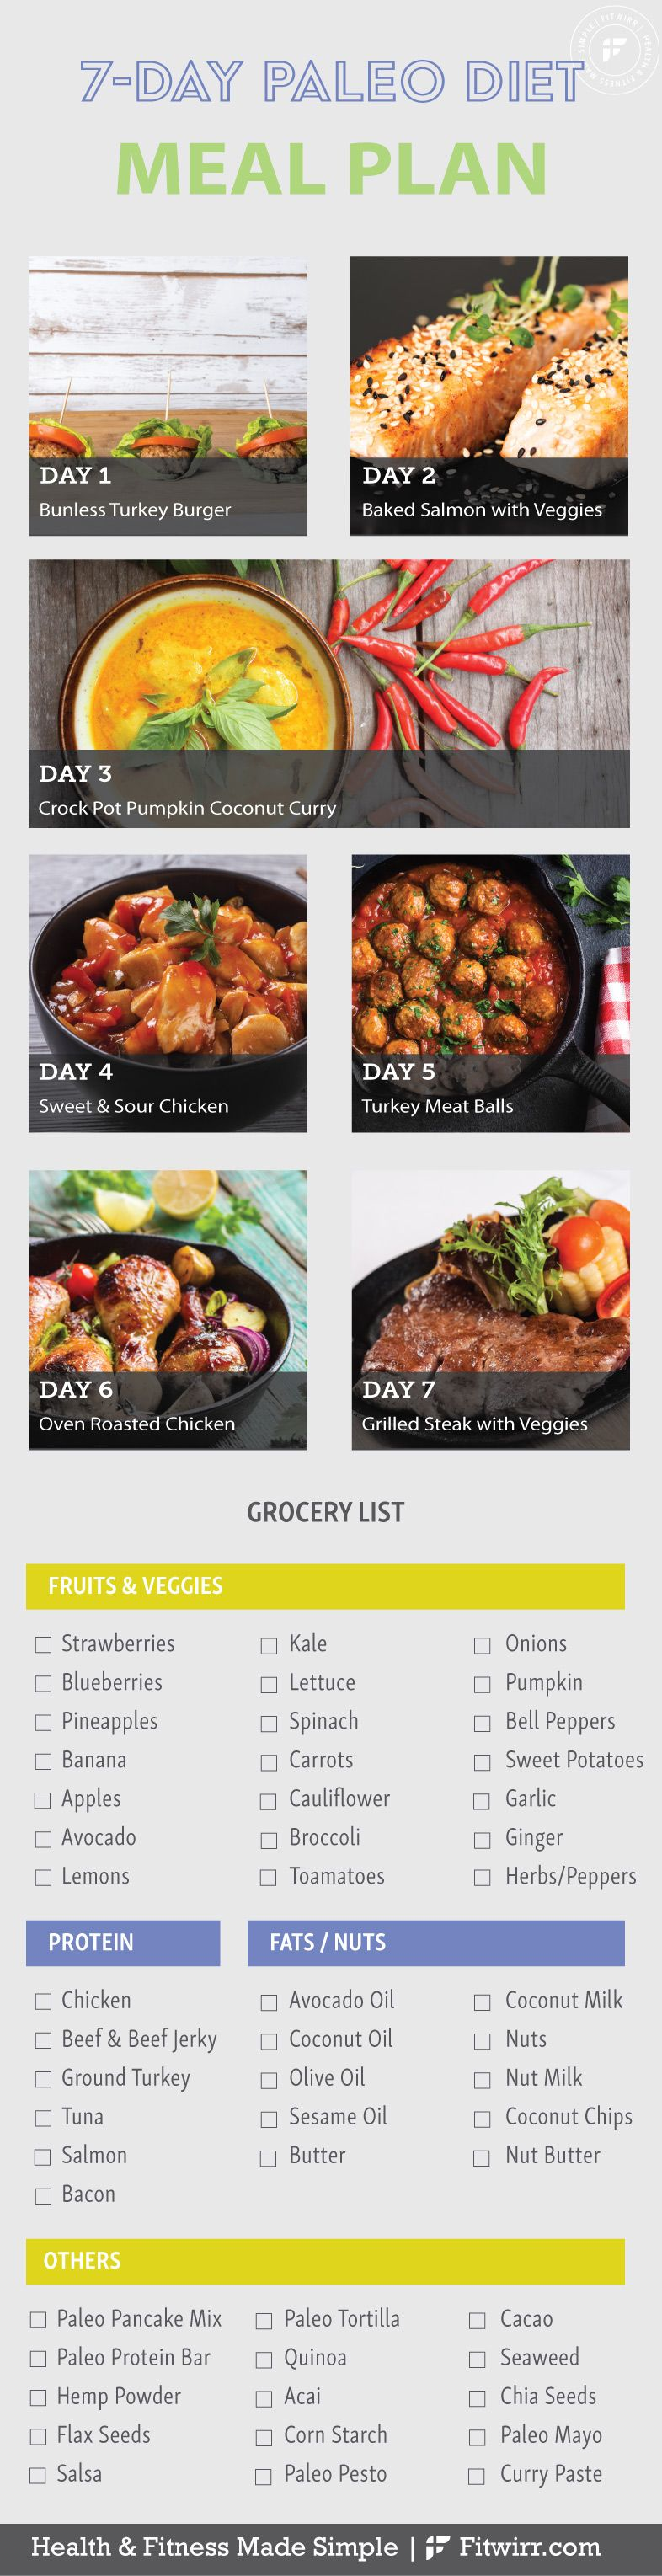 paleo diet 7 day meal plan